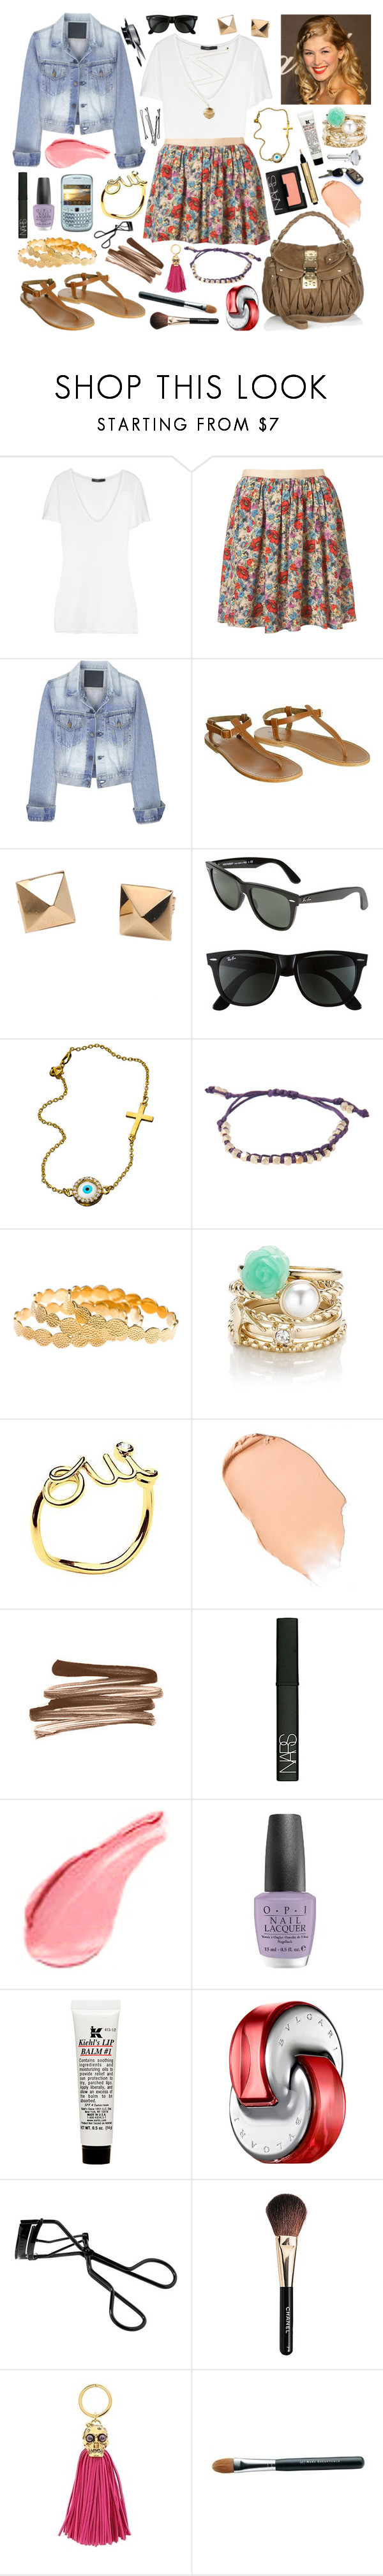 """04-06-12"" by belledenuit ❤ liked on Polyvore featuring Bassike, Bruuns Bazaar, Prada, CO, Han Cholo, Ray-Ban, Shashi, Melinda Maria, House of Harlow 1960 and Christian Dior"